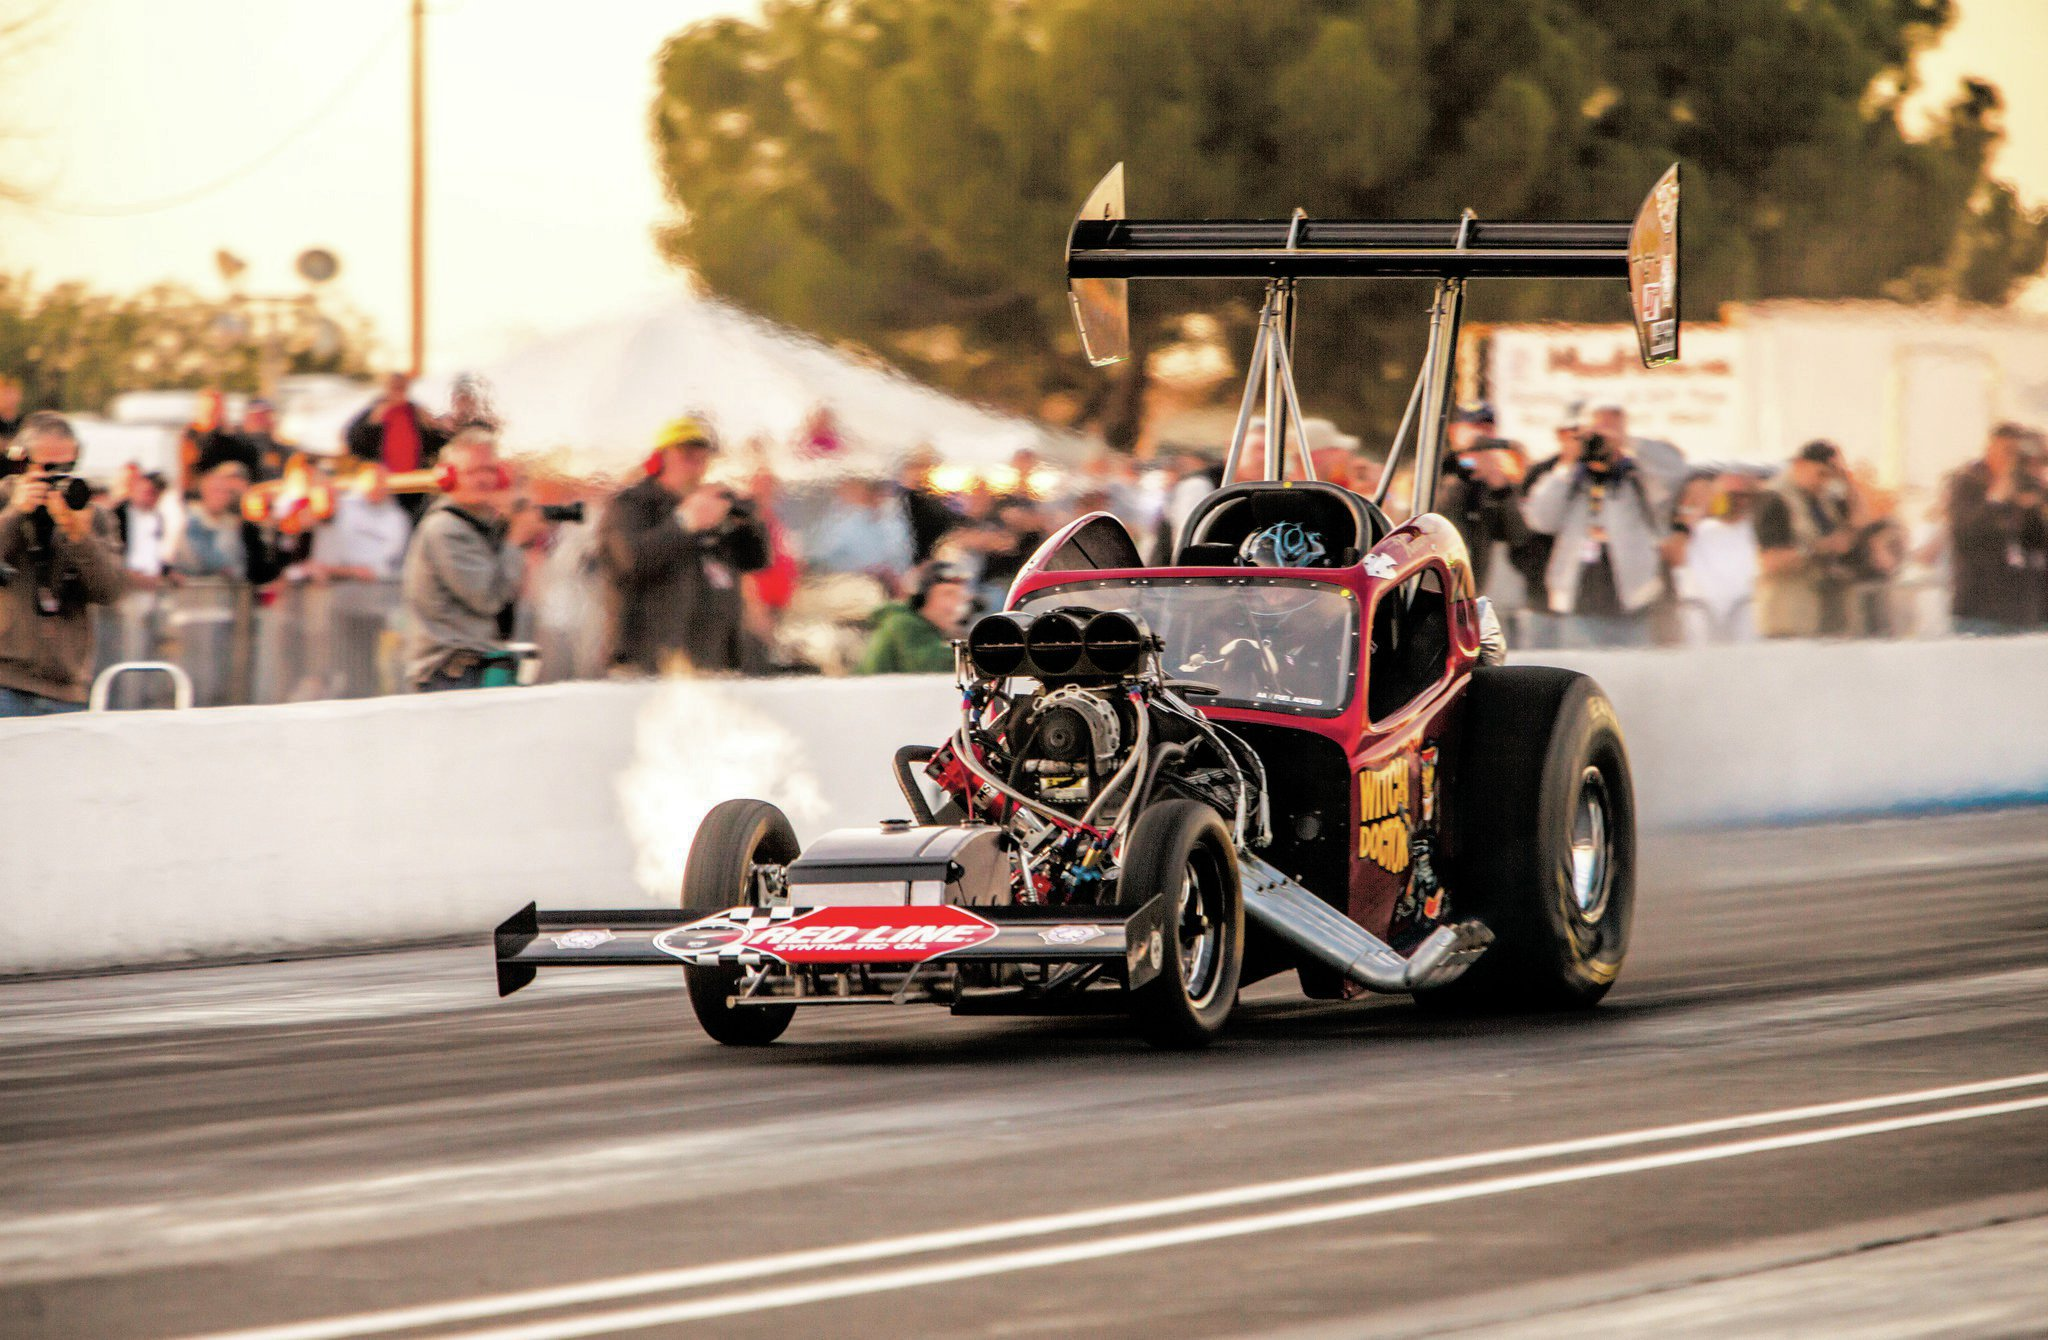 One of the meanest machines in the circuit is Witch Doctor, piloted by Keith Wilson.